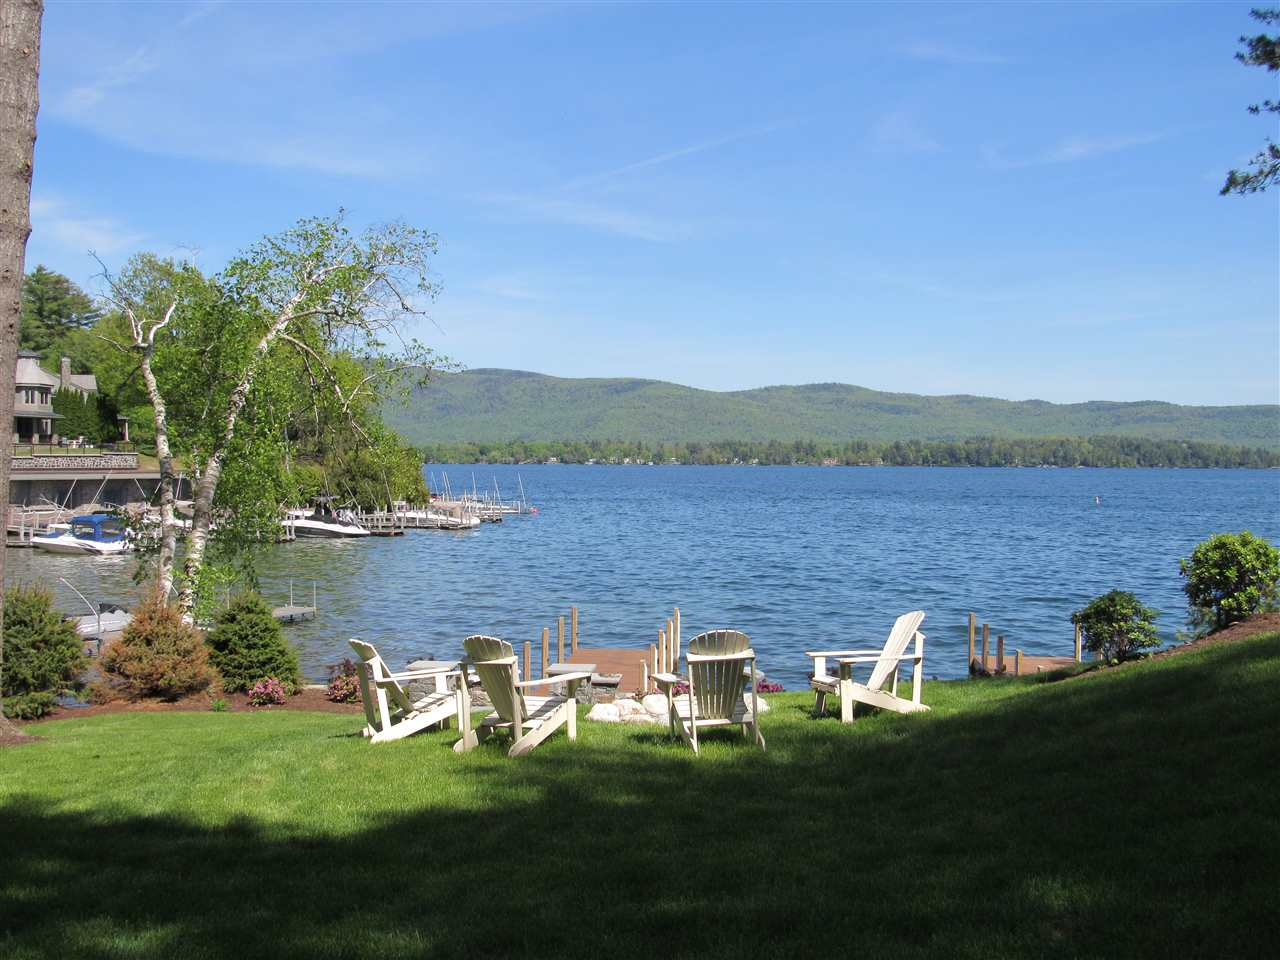 Lake George image 45